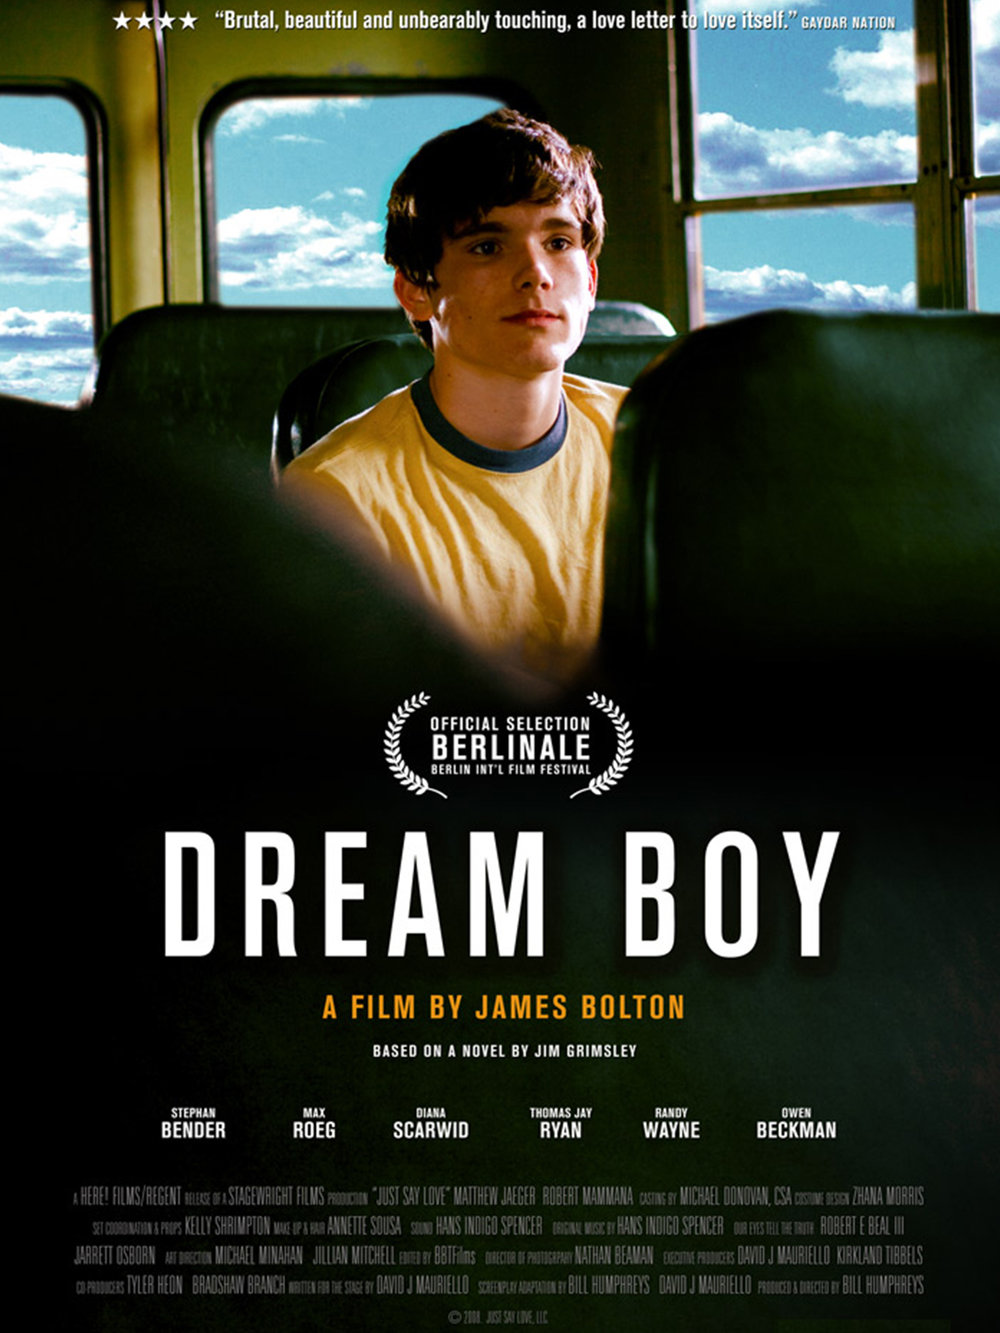 Here-DreamBoy-Full-Image-en-US.jpg